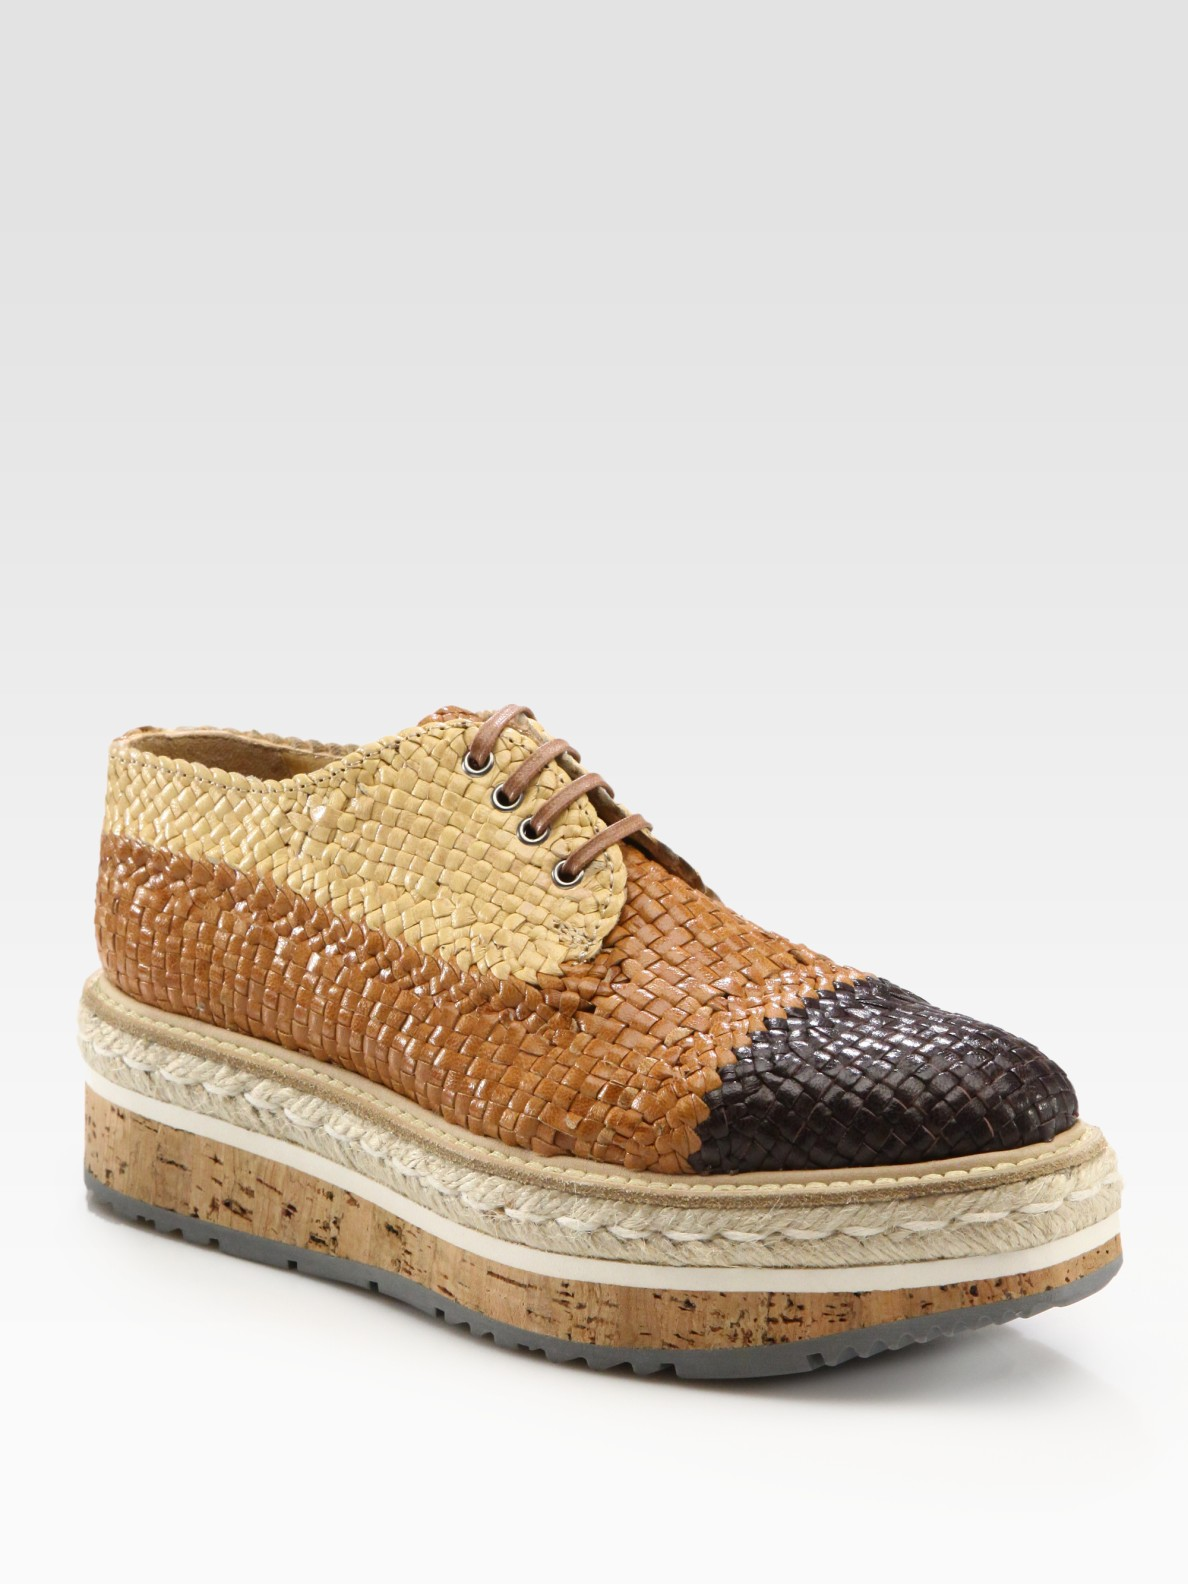 Prada Woven Lace Up Platform Oxfords In Brown Lyst